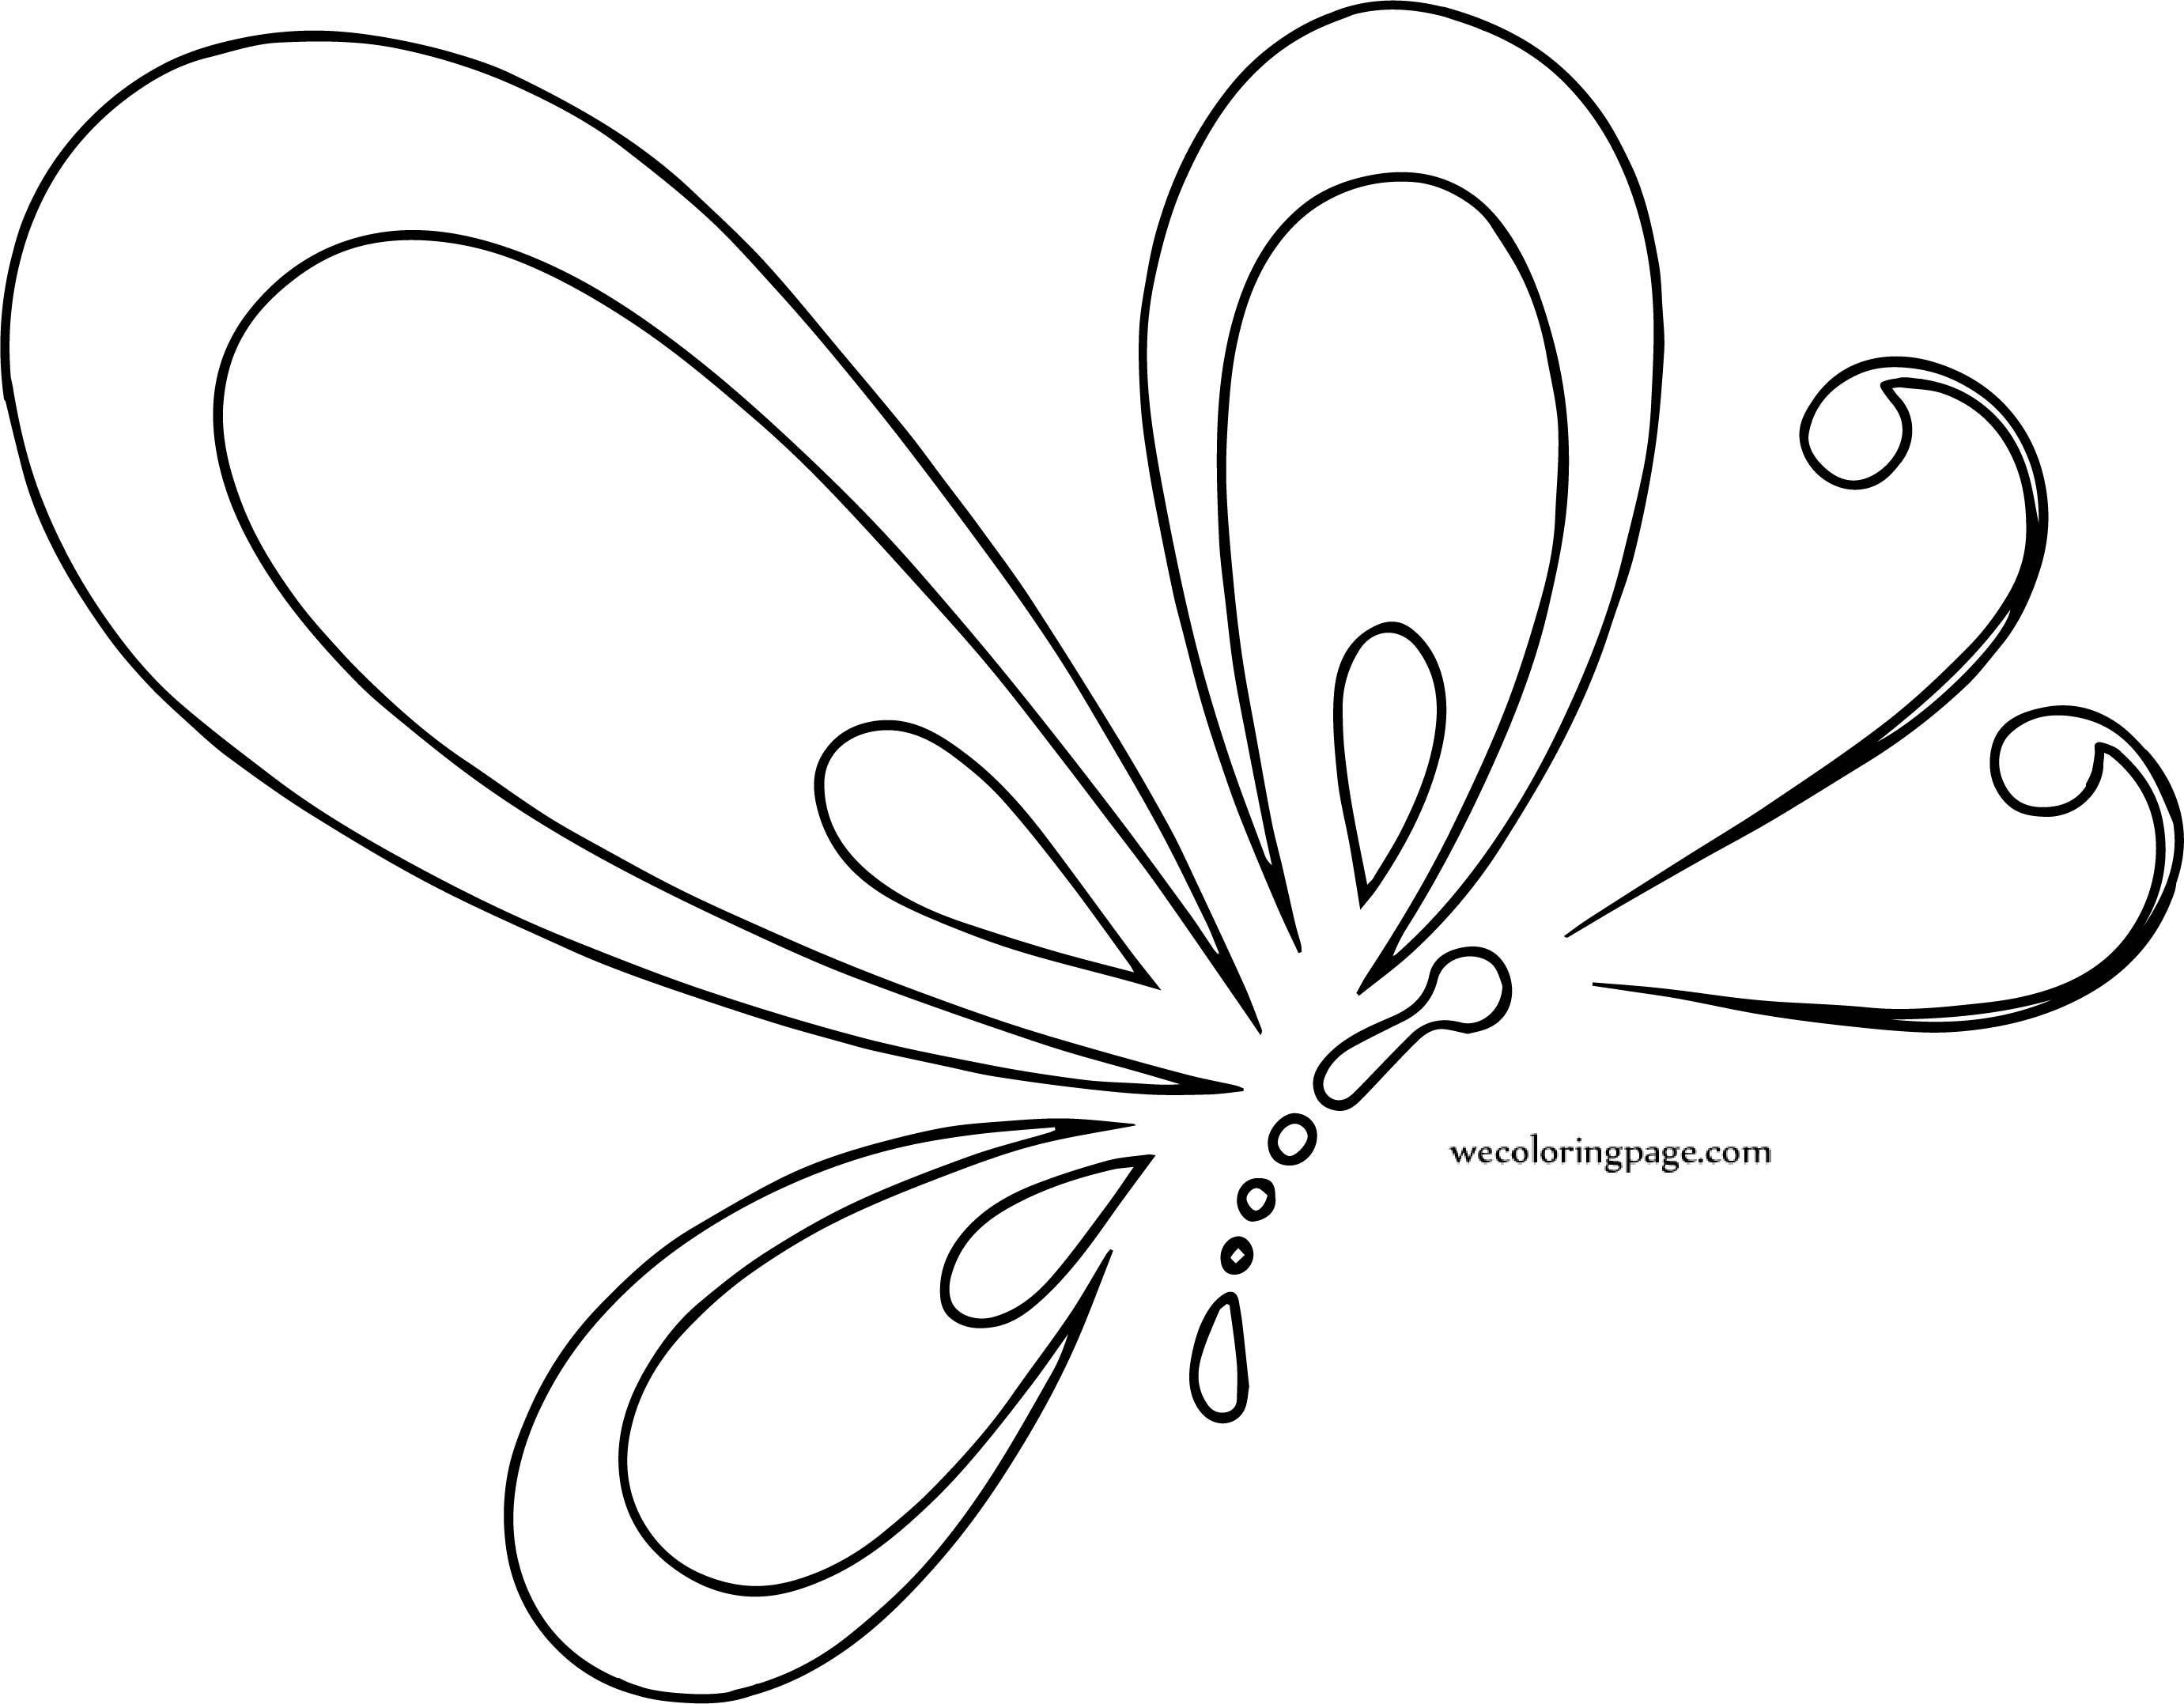 Butterfly Coloring Page Wecoloringpage 84